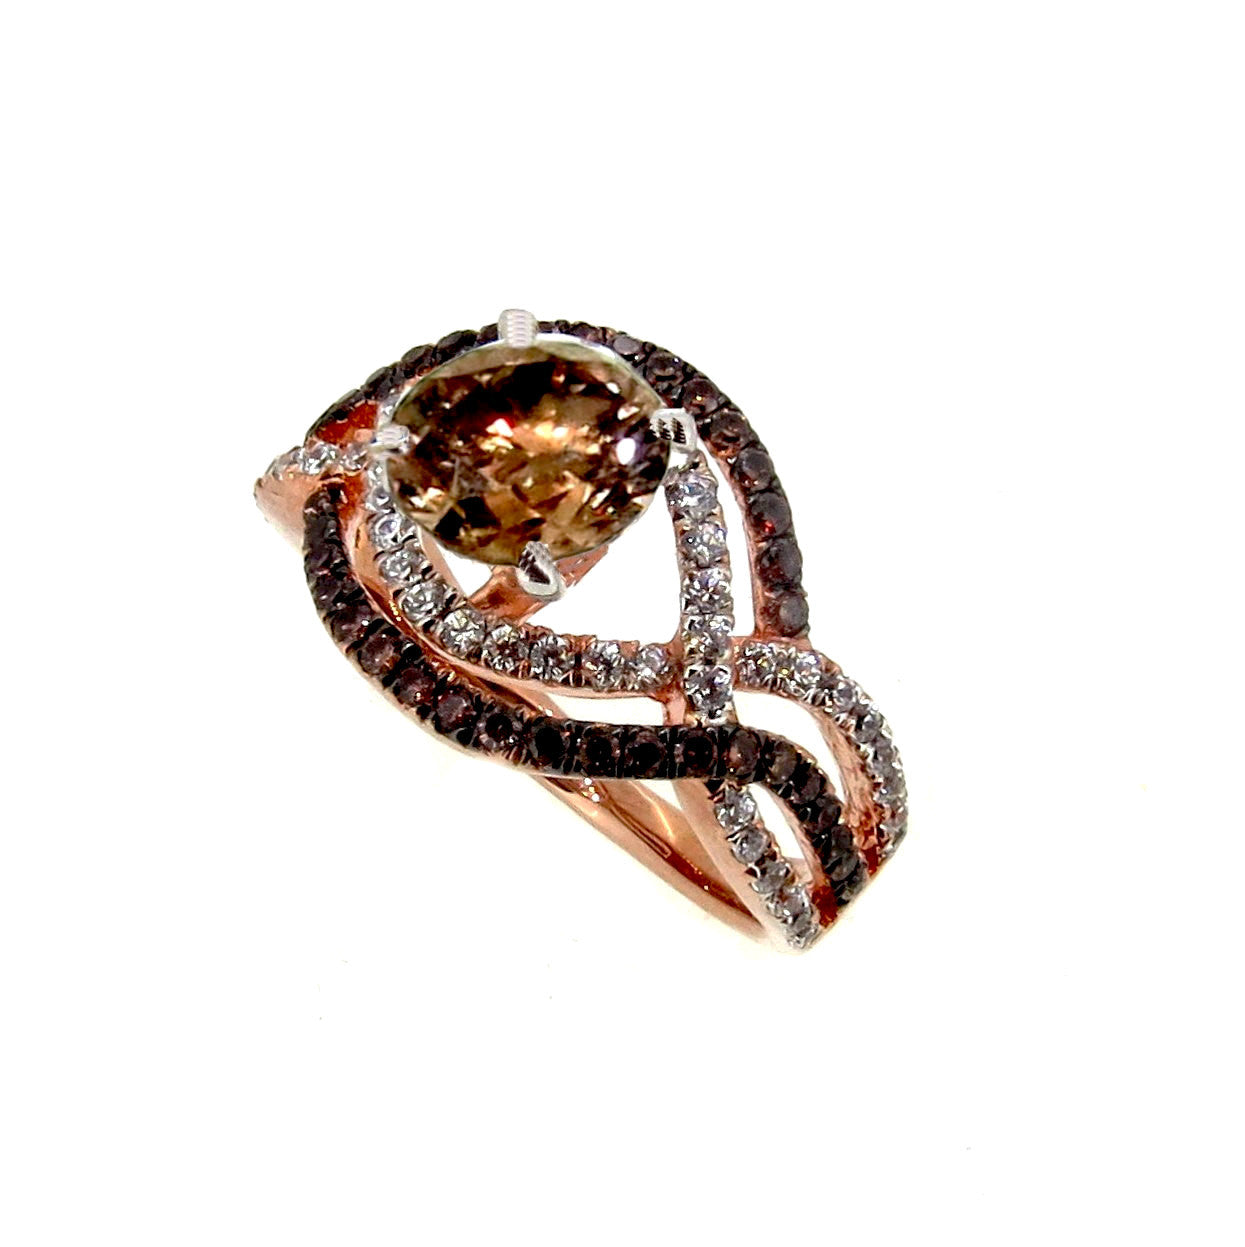 Unique Halo Infinity 1 Carat Fancy Brown Smoky Quartz Engagement Ring with Rose Gold, White & Brown Diamond Accent Stones, Anniversary Ring - SQ94645